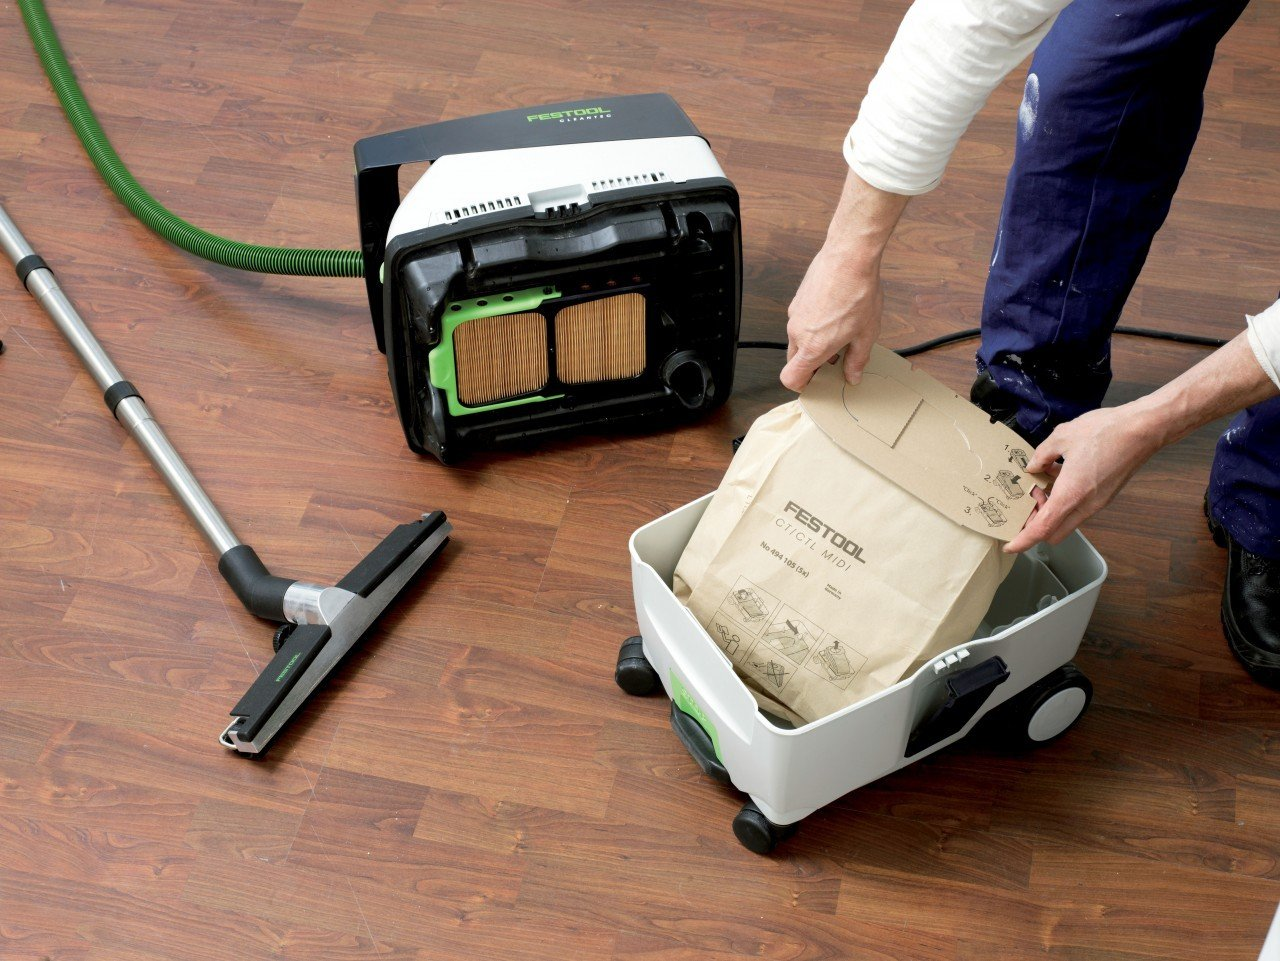 Festool PI574432 Domino Mortise and Tenon Joiner Set with CT MIDI HEPA 3.3 Gallon Mobile Dust Extractor